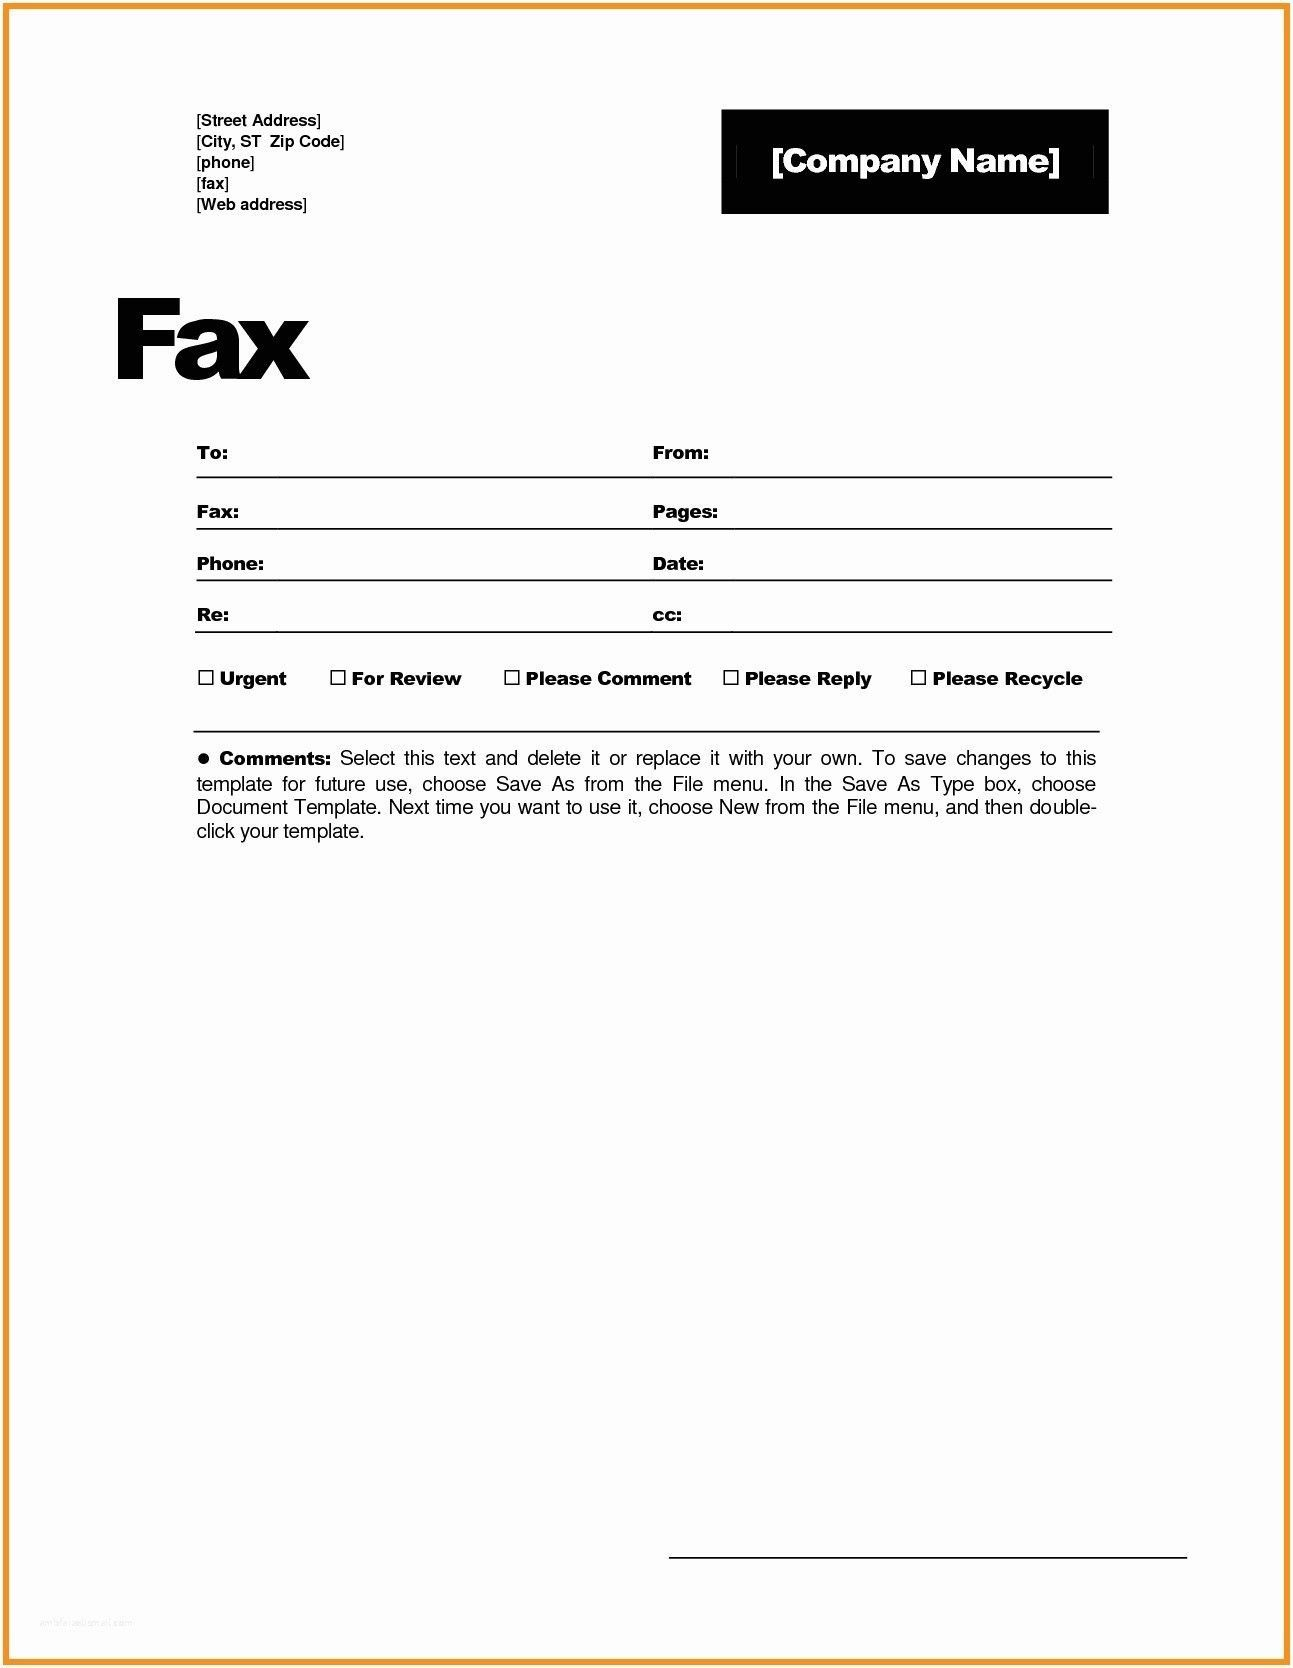 001 Magnificent General Fax Cover Letter Template Photo  Sheet Word Confidential ExampleFull